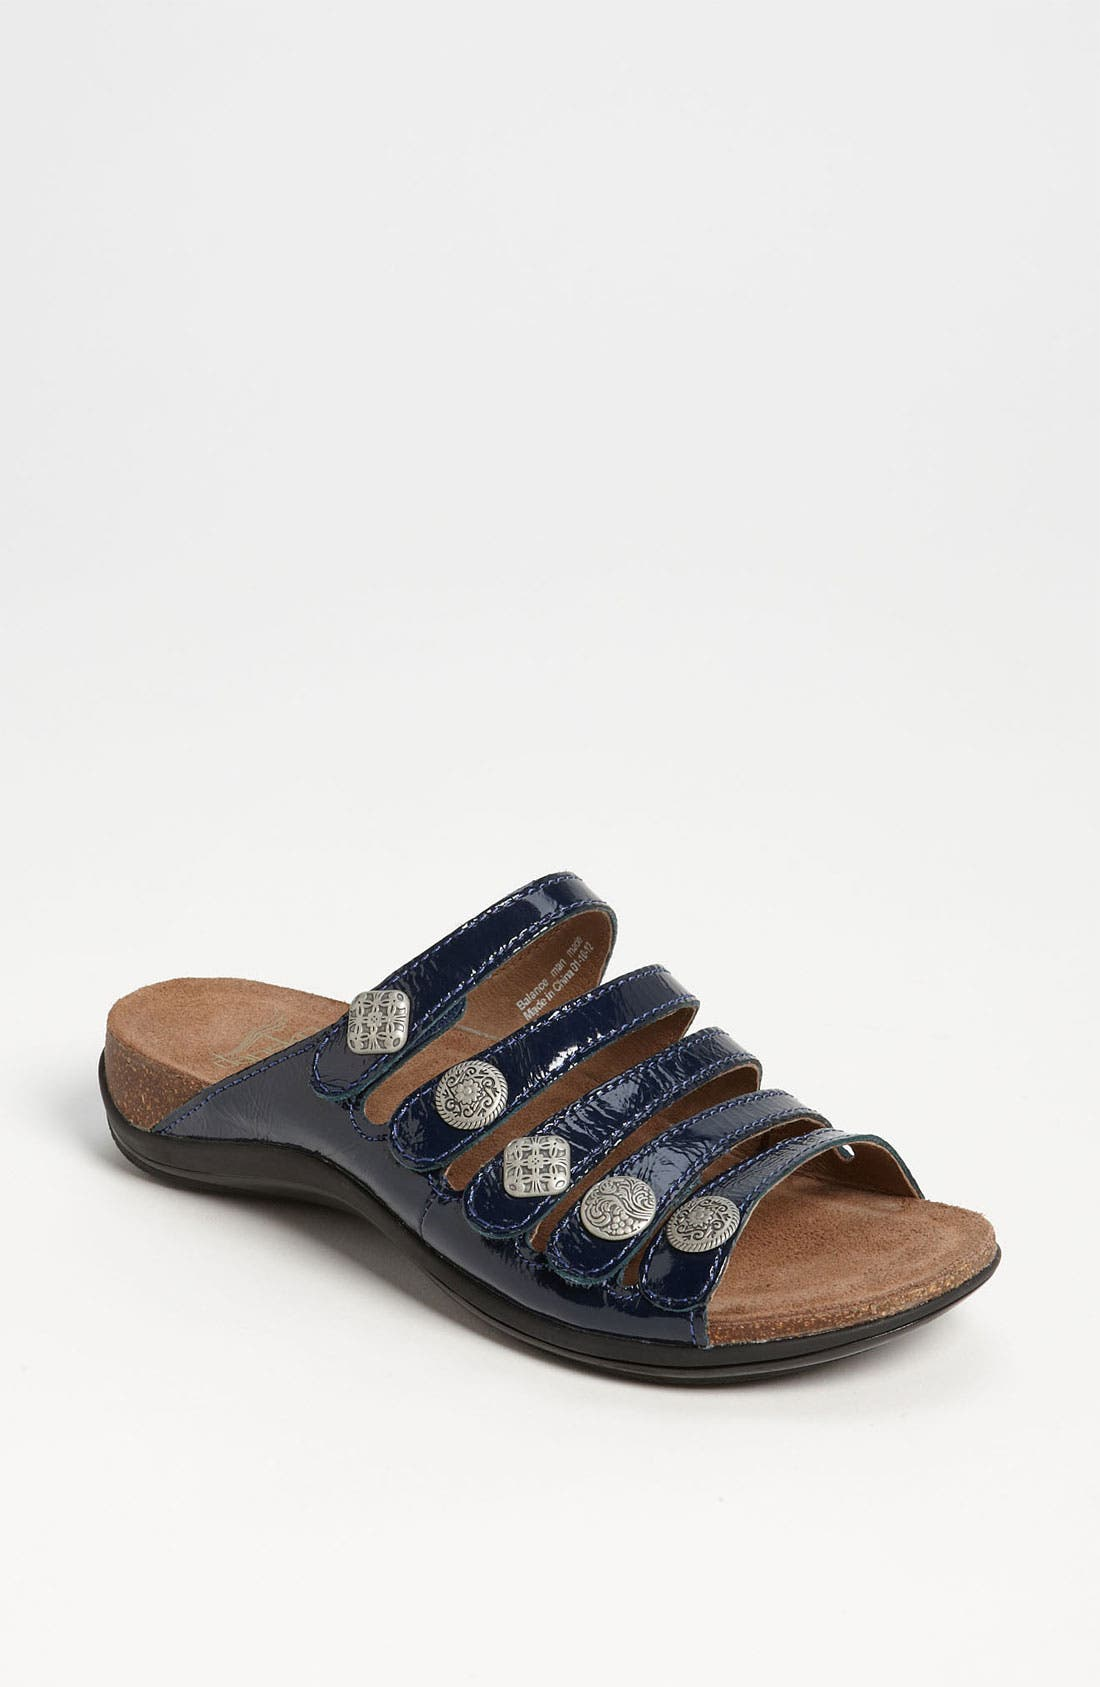 Alternate Image 1 Selected - Dansko 'Janie' Sandal